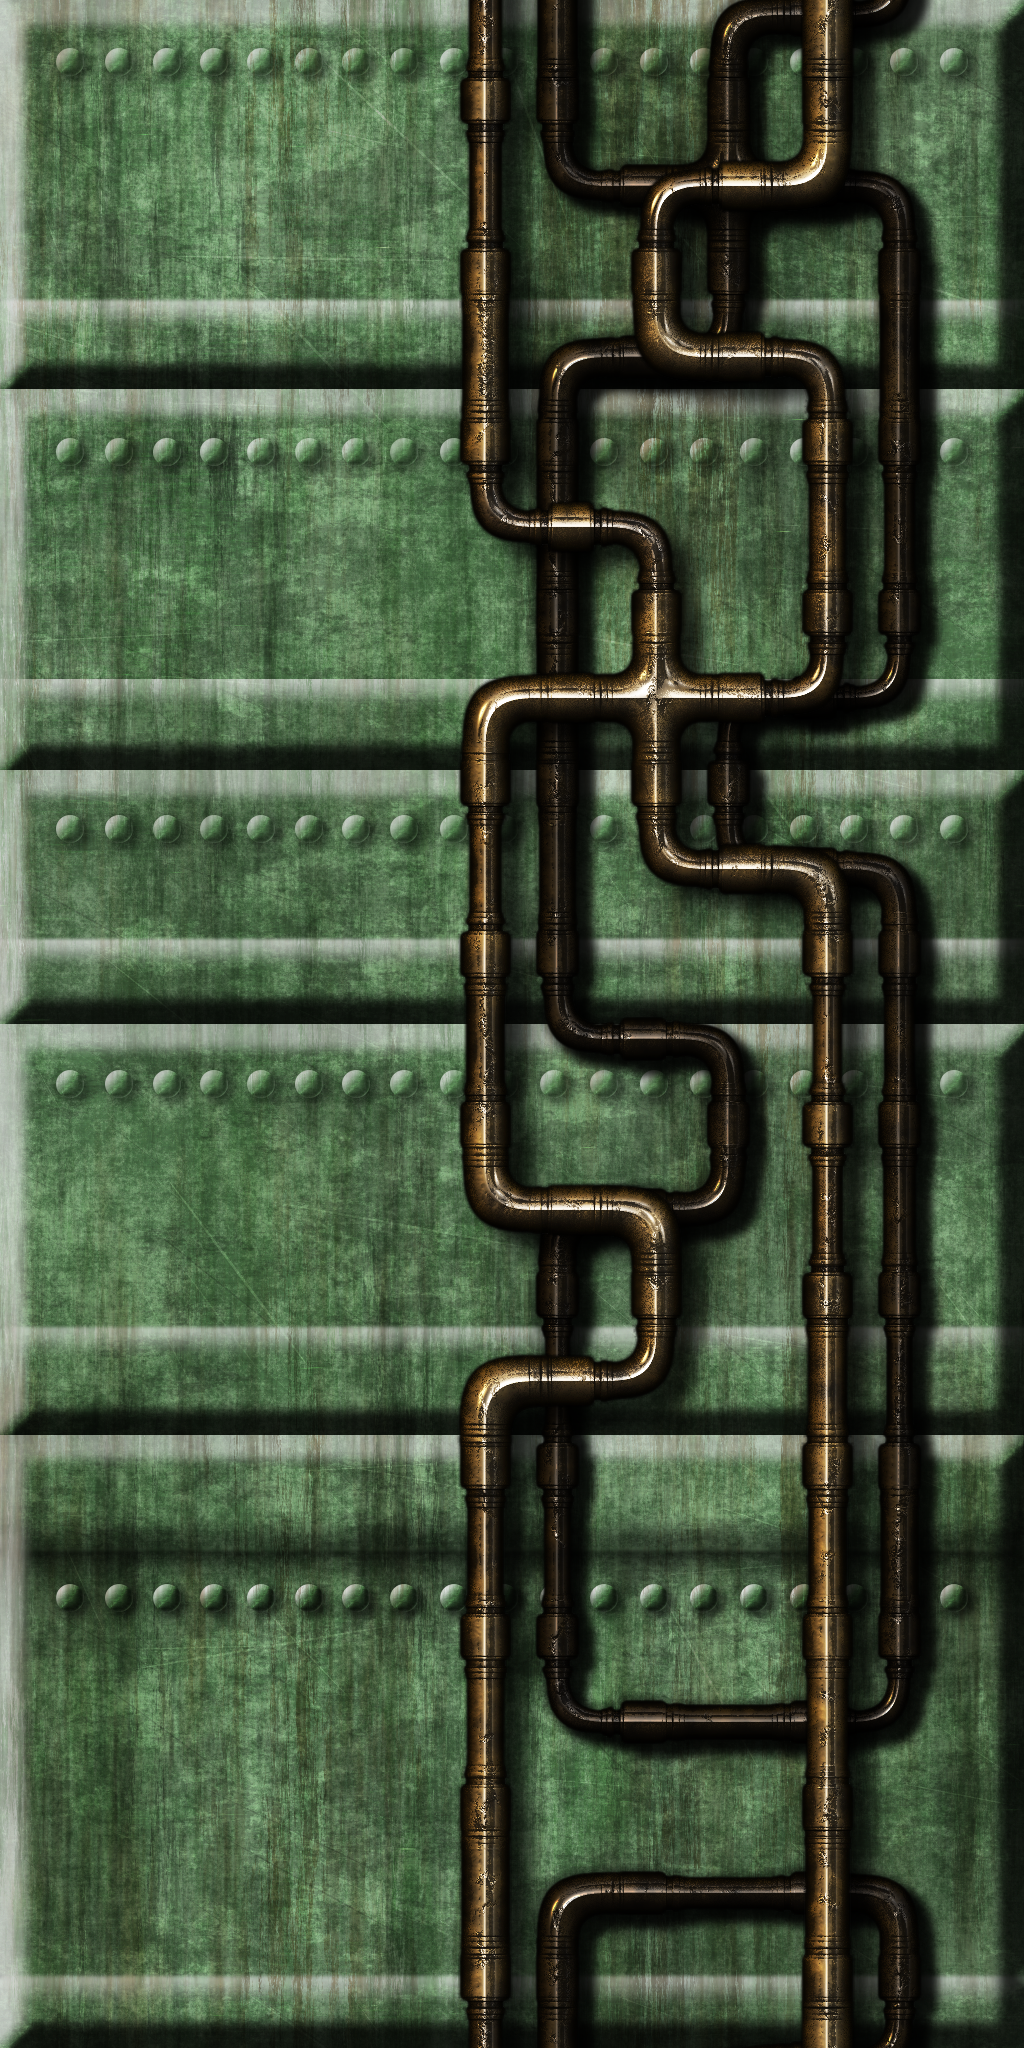 Green Tech Wall 04 by Hoover1979